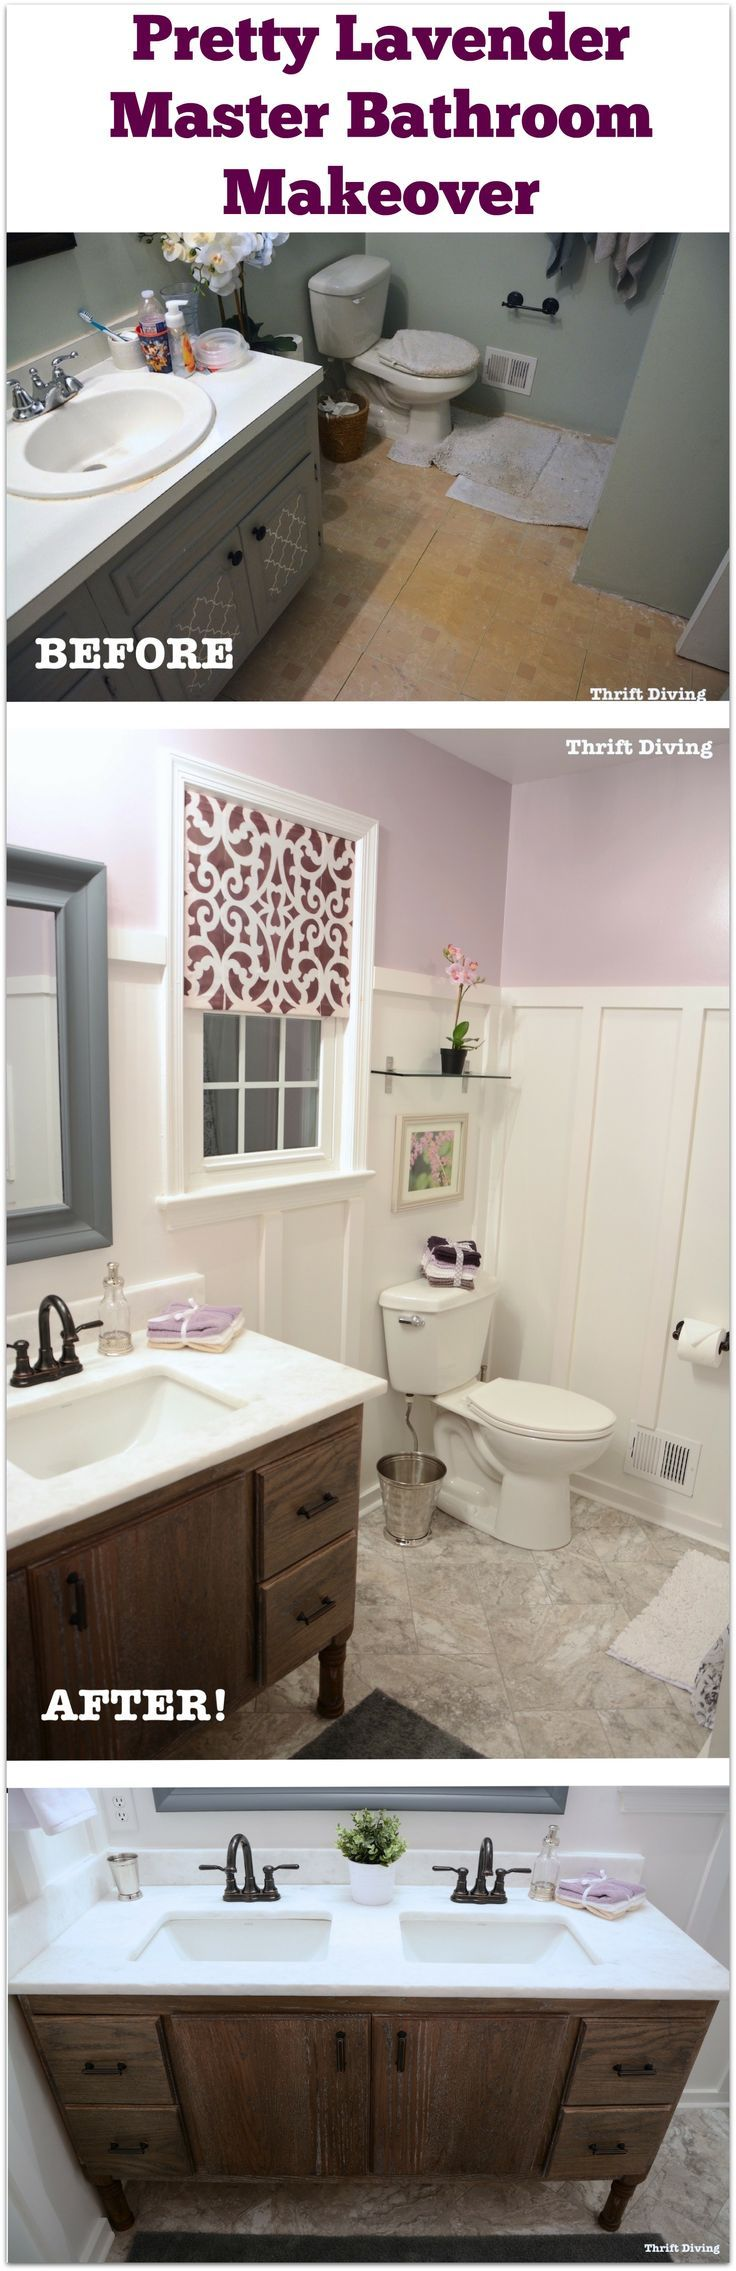 Best 25 old bathrooms ideas on pinterest average - Building a bathroom vanity from scratch ...